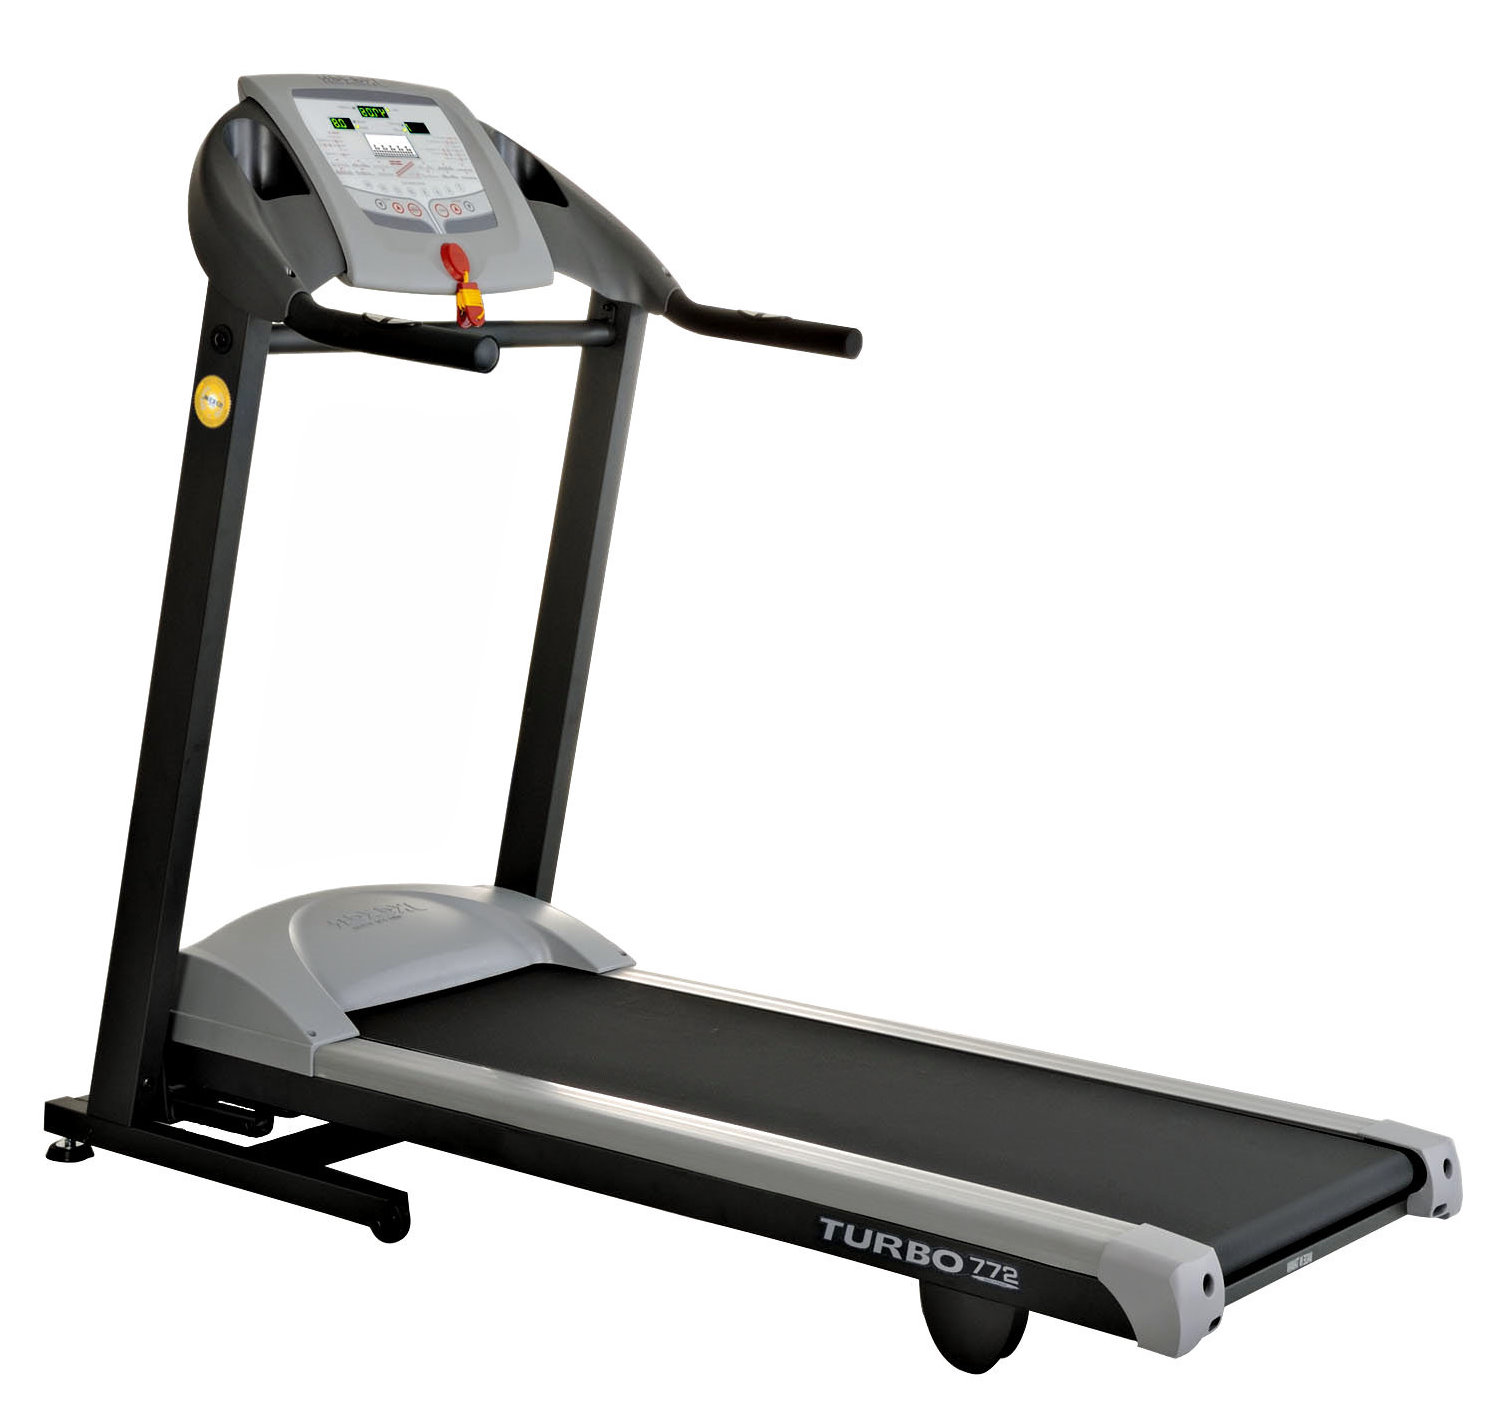 Turbo 772 treadmills